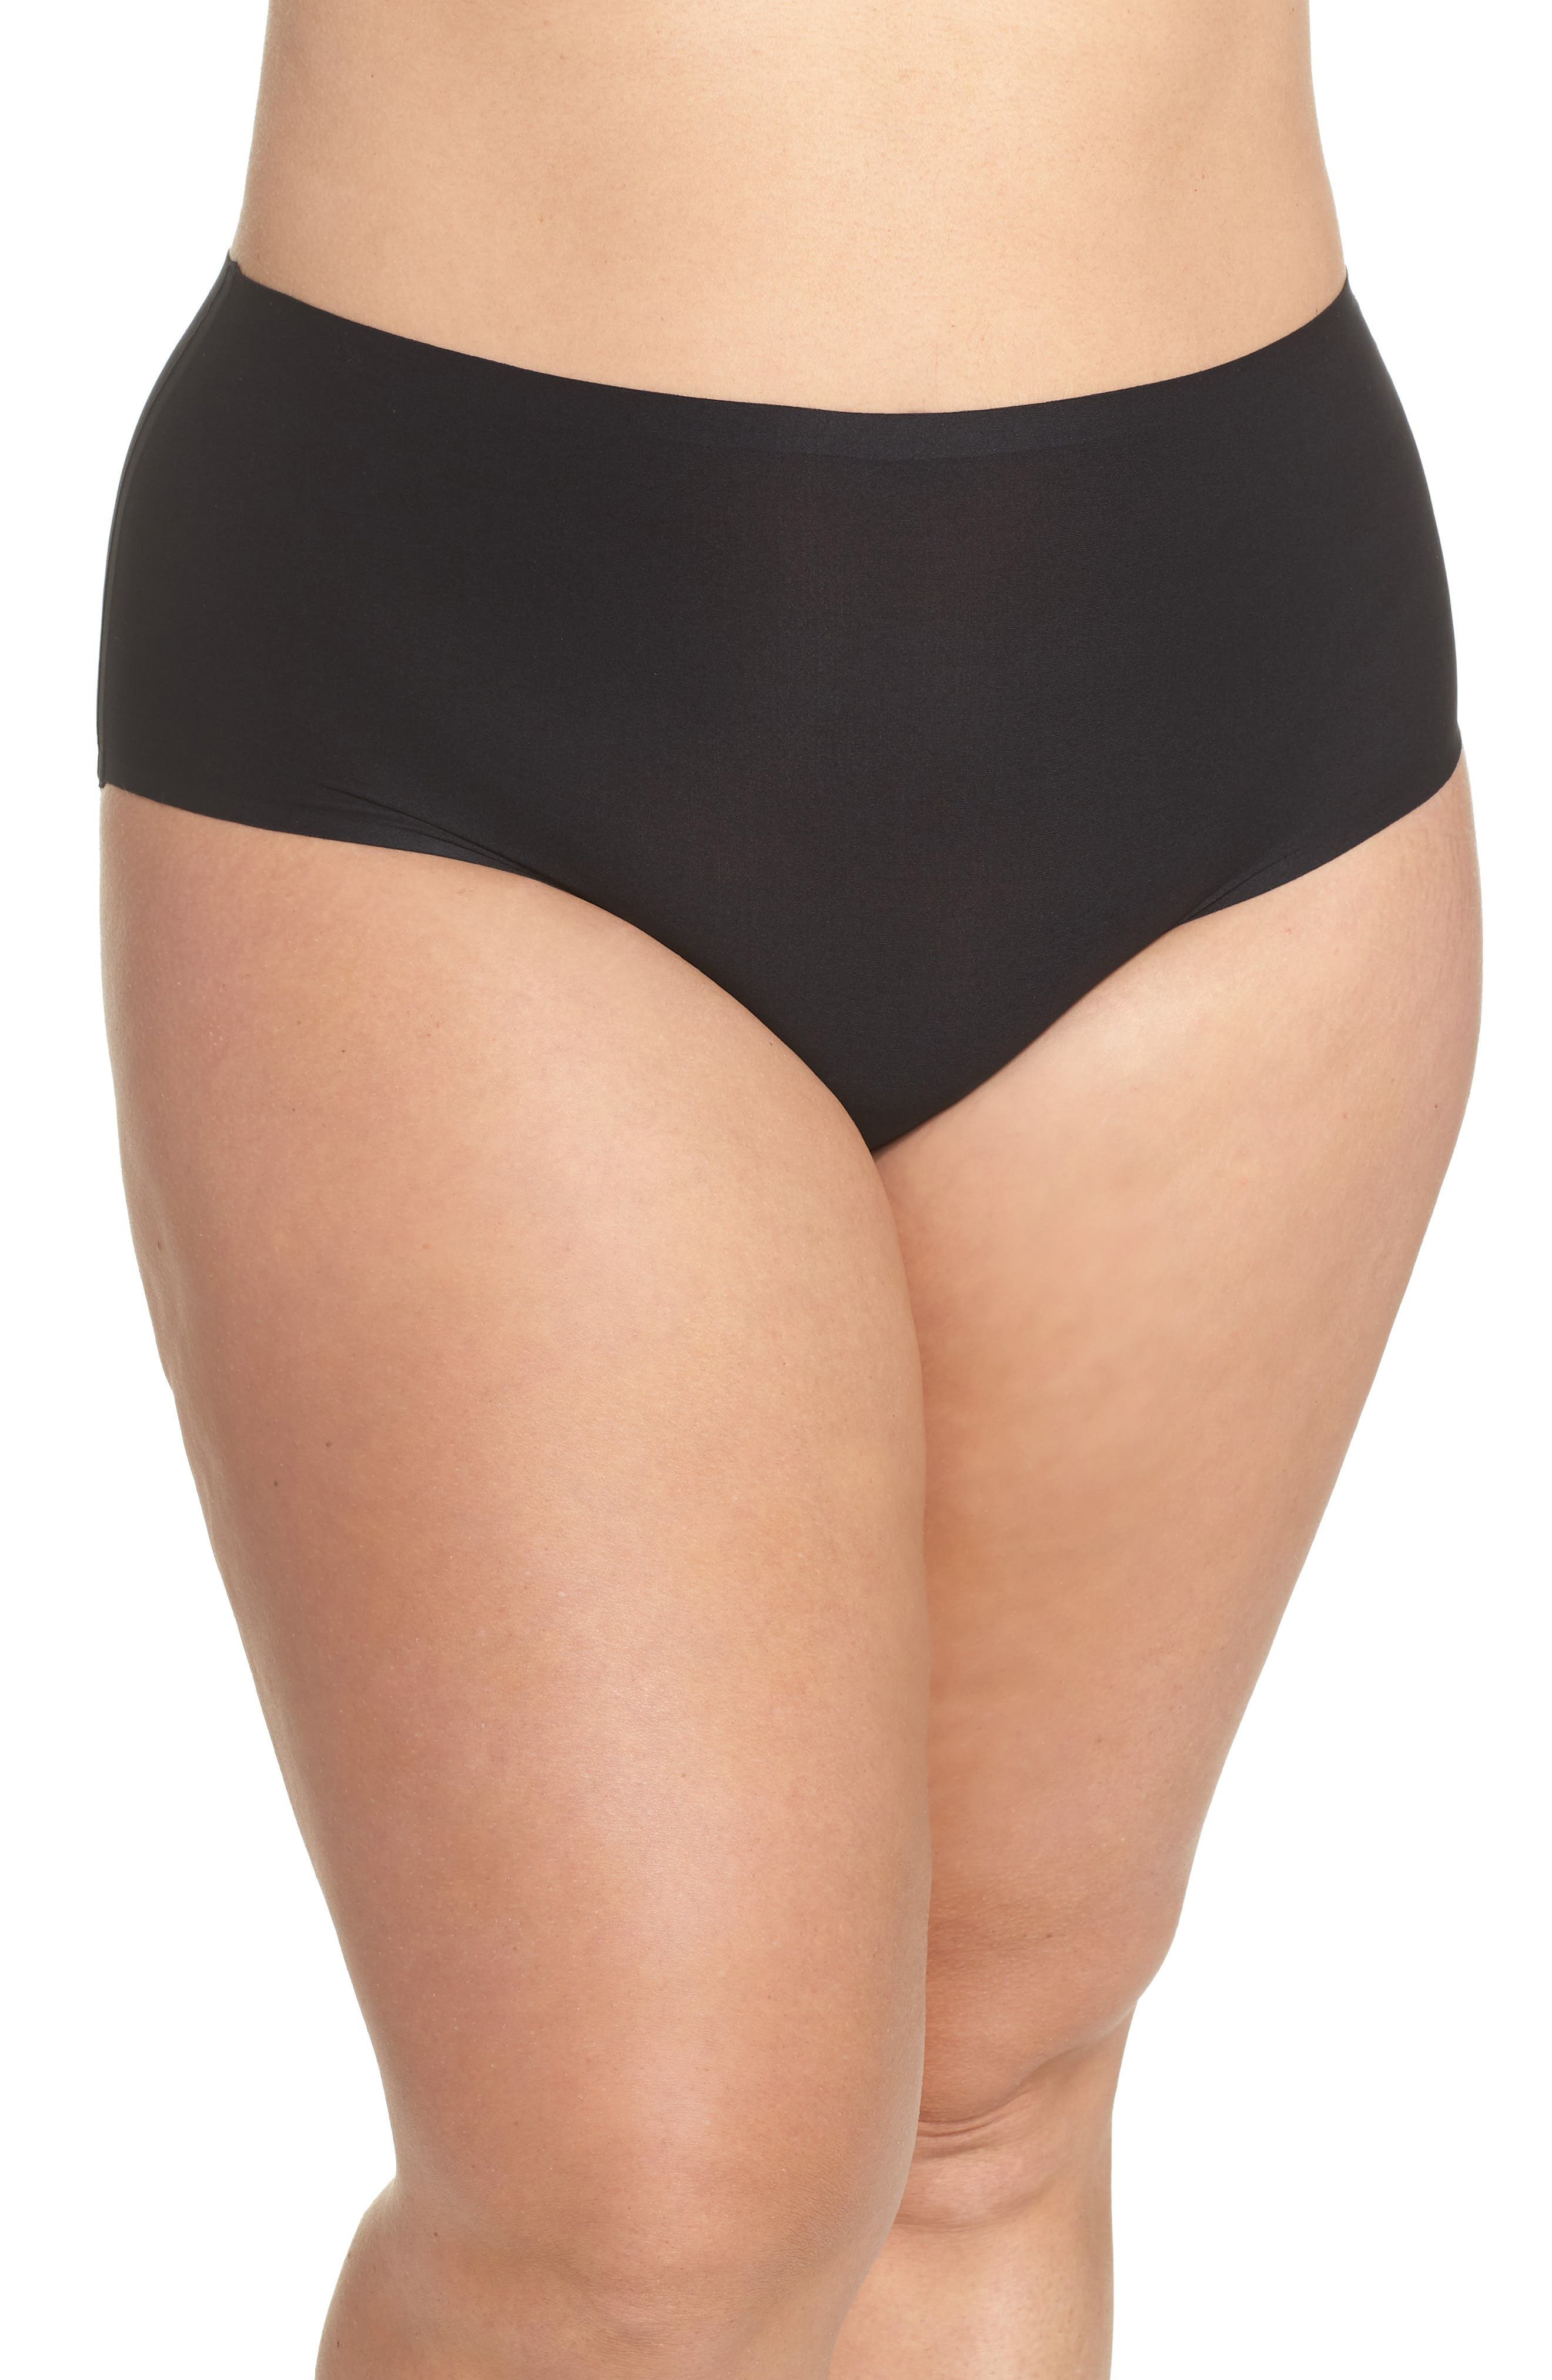 CHANTELLE LINGERIE, Soft Stretch High Waist Seamless Briefs, Main thumbnail 1, color, BLACK